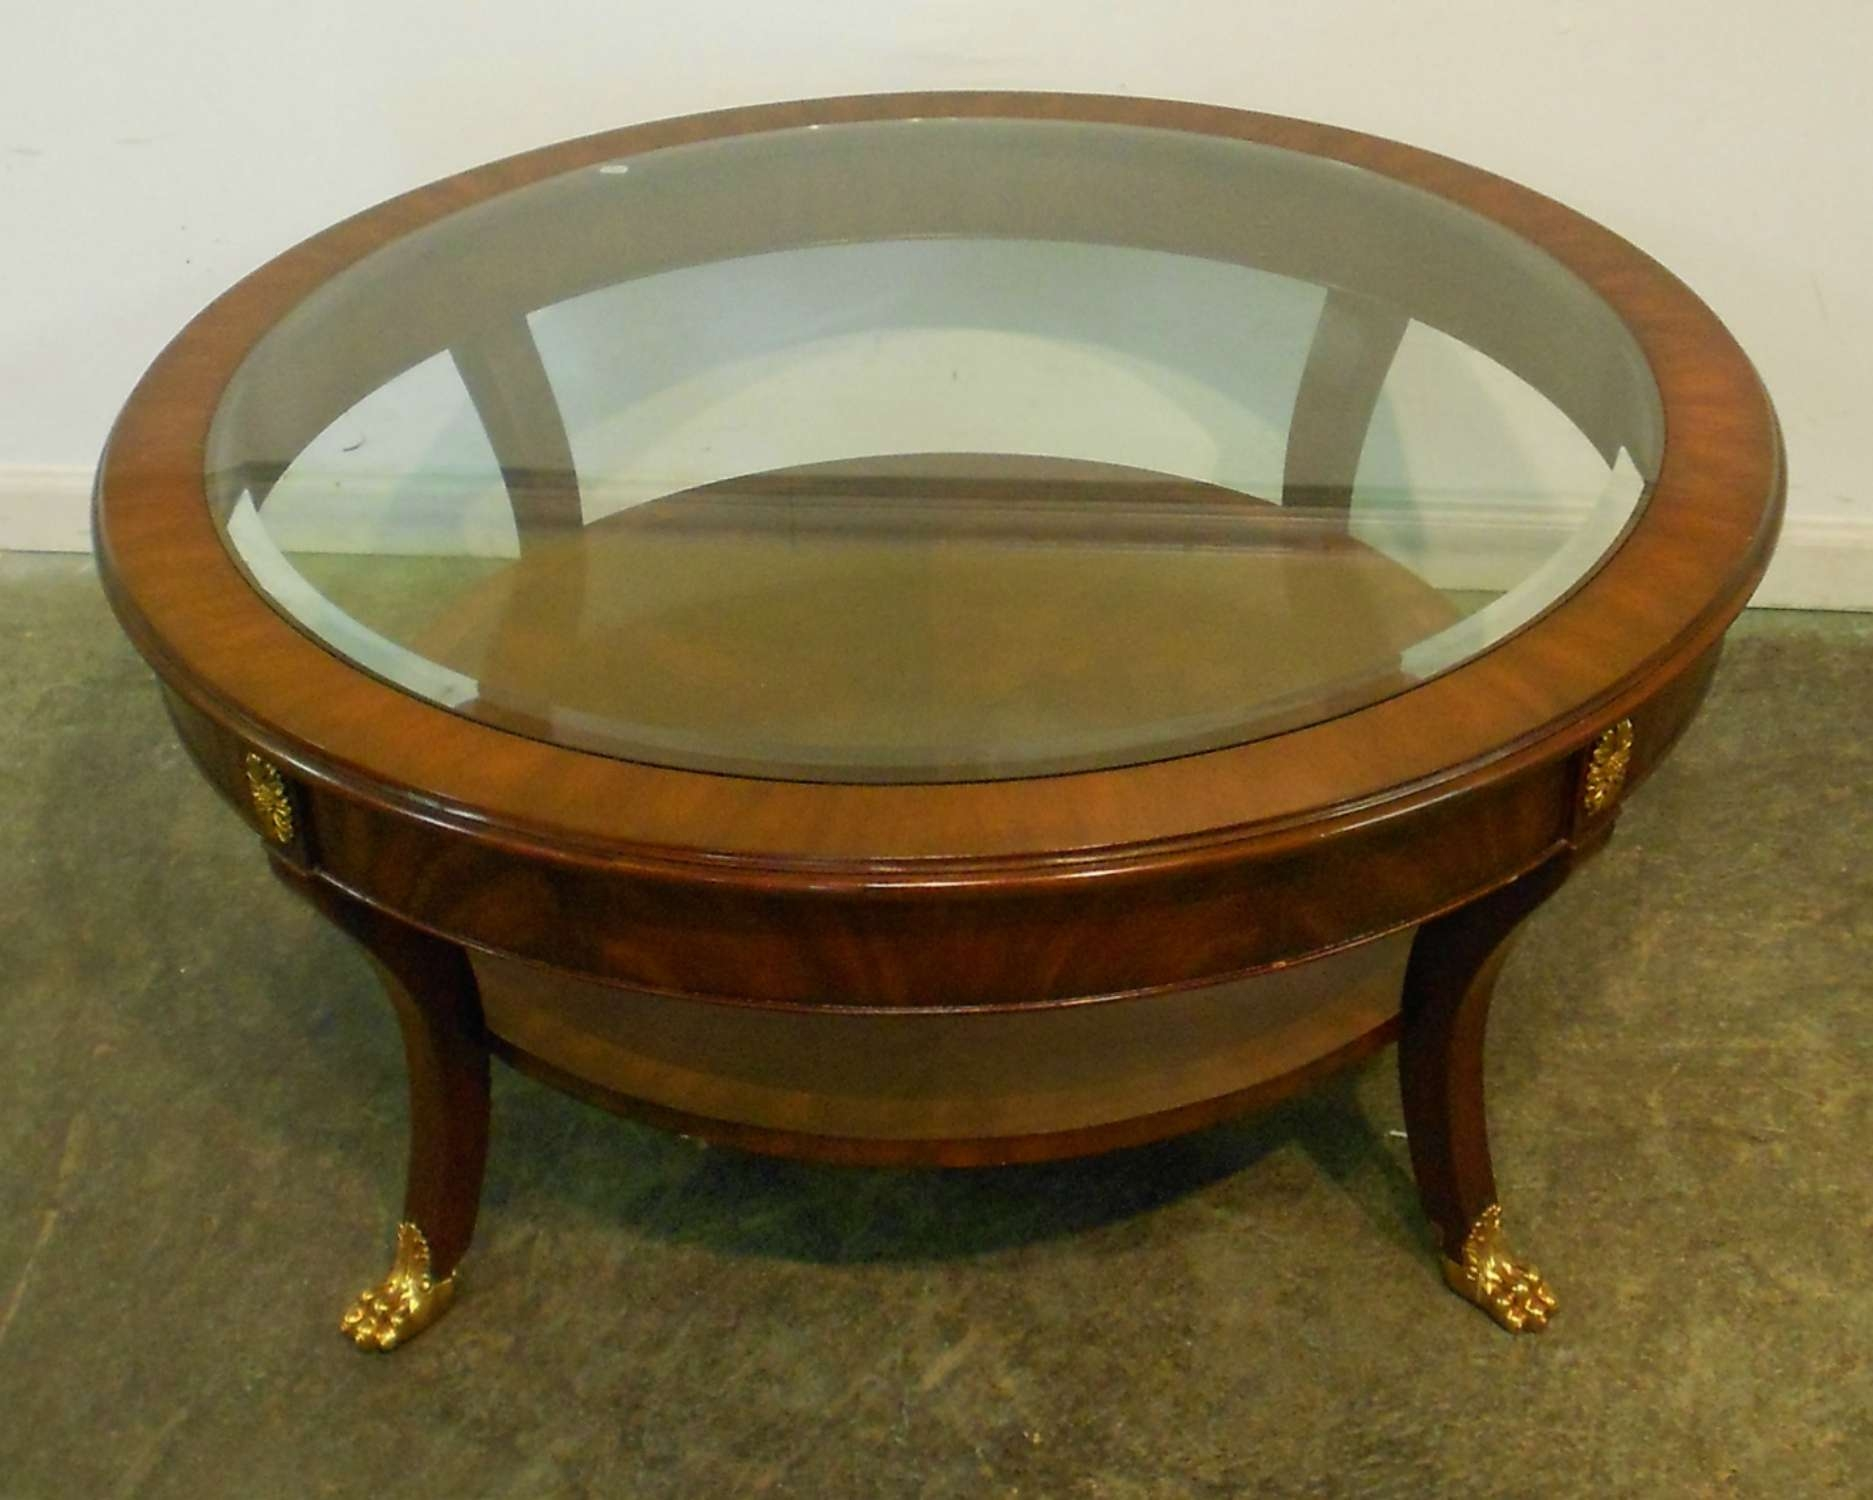 Most Recent Small Circle Coffee Tables Intended For Small Round Mahogany Coffee Table With Glass Top Brass Legs And (View 12 of 20)